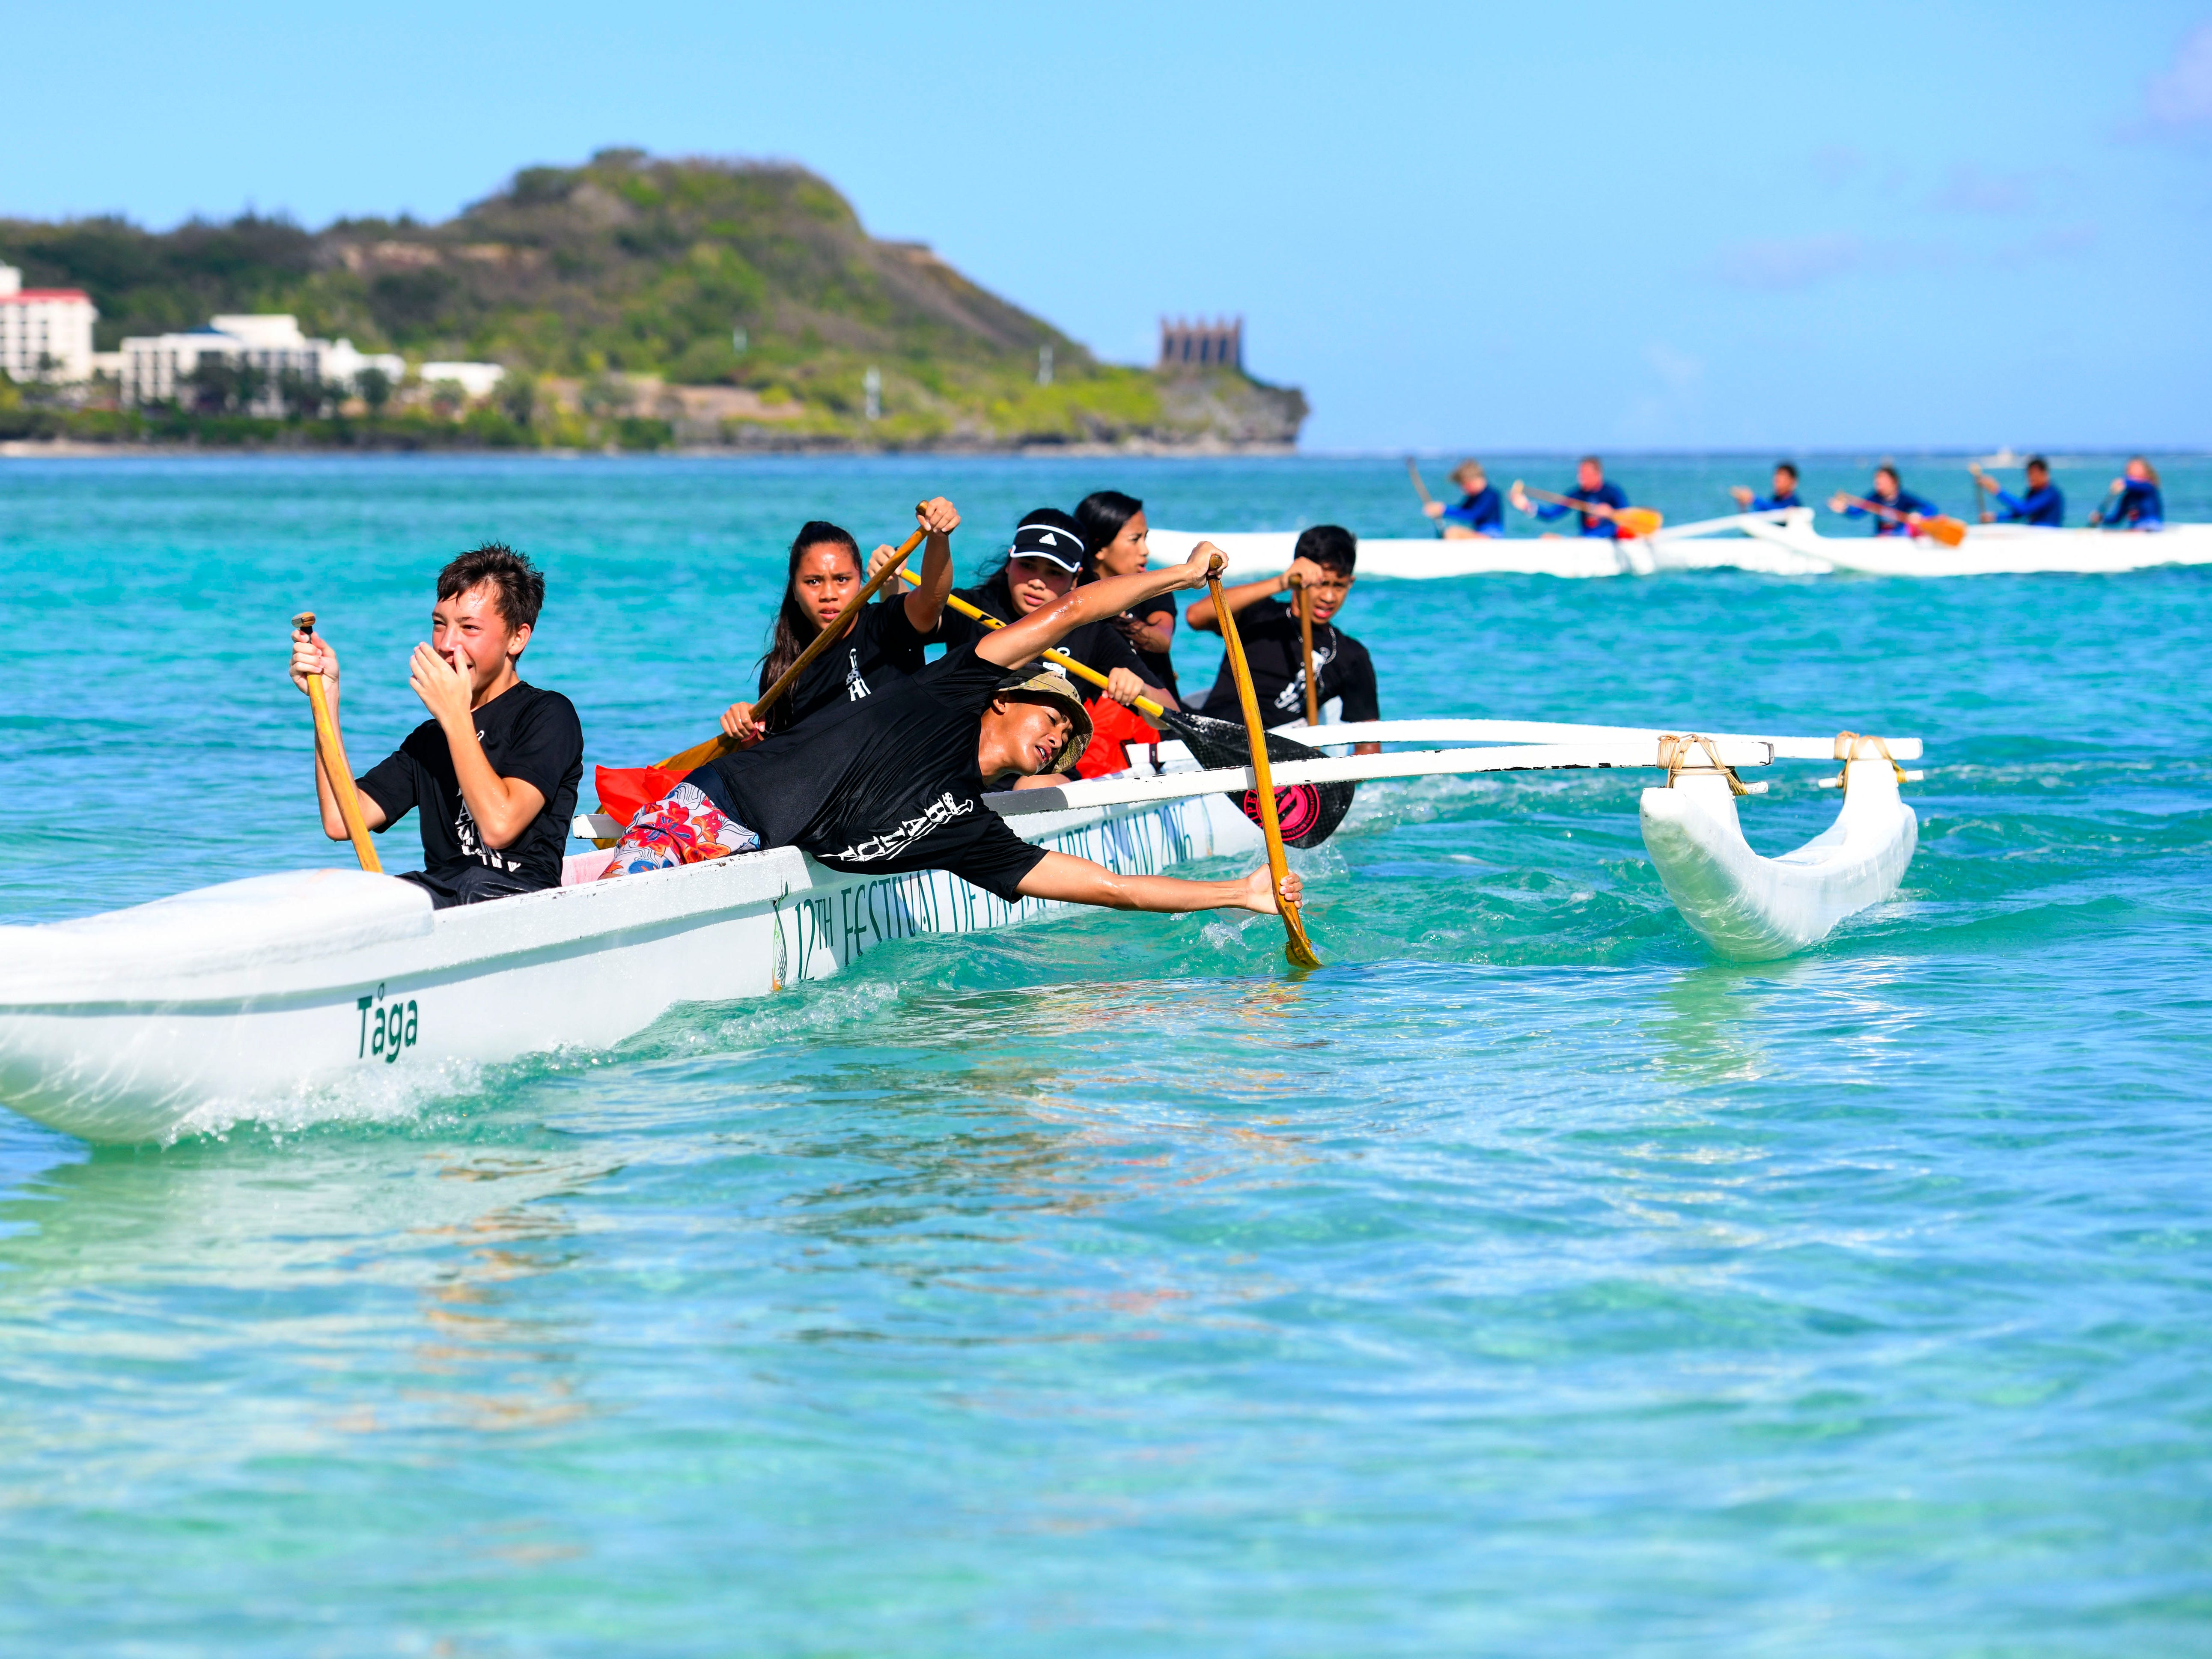 Simon Sanchez Shark paddlers cross the finish line after completing a 1000m mixed manhoben preliminary race in IIAAG Paddling competition at Matapang Beach in Tumon on Saturday, May 11, 2019.